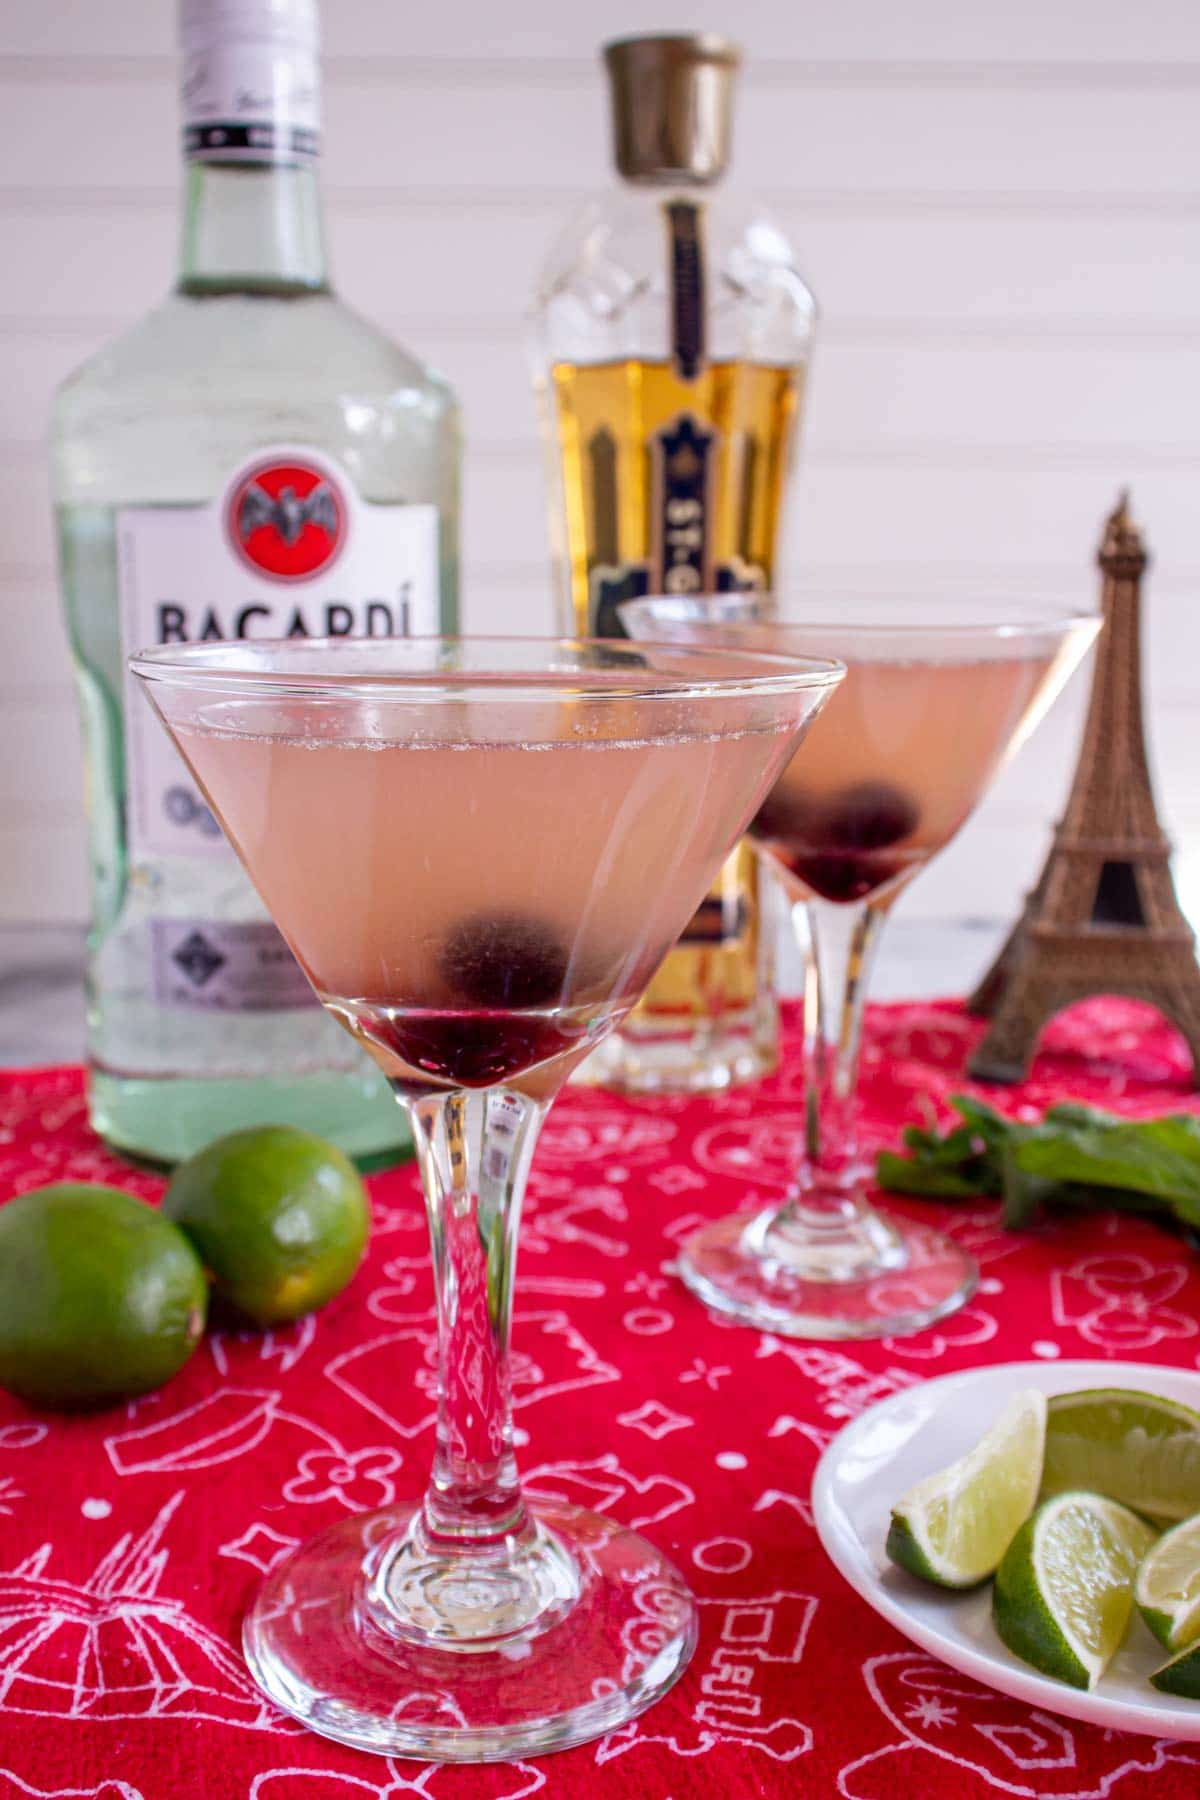 Two martini glasses with drinks garnished with black cherries on a red surface.